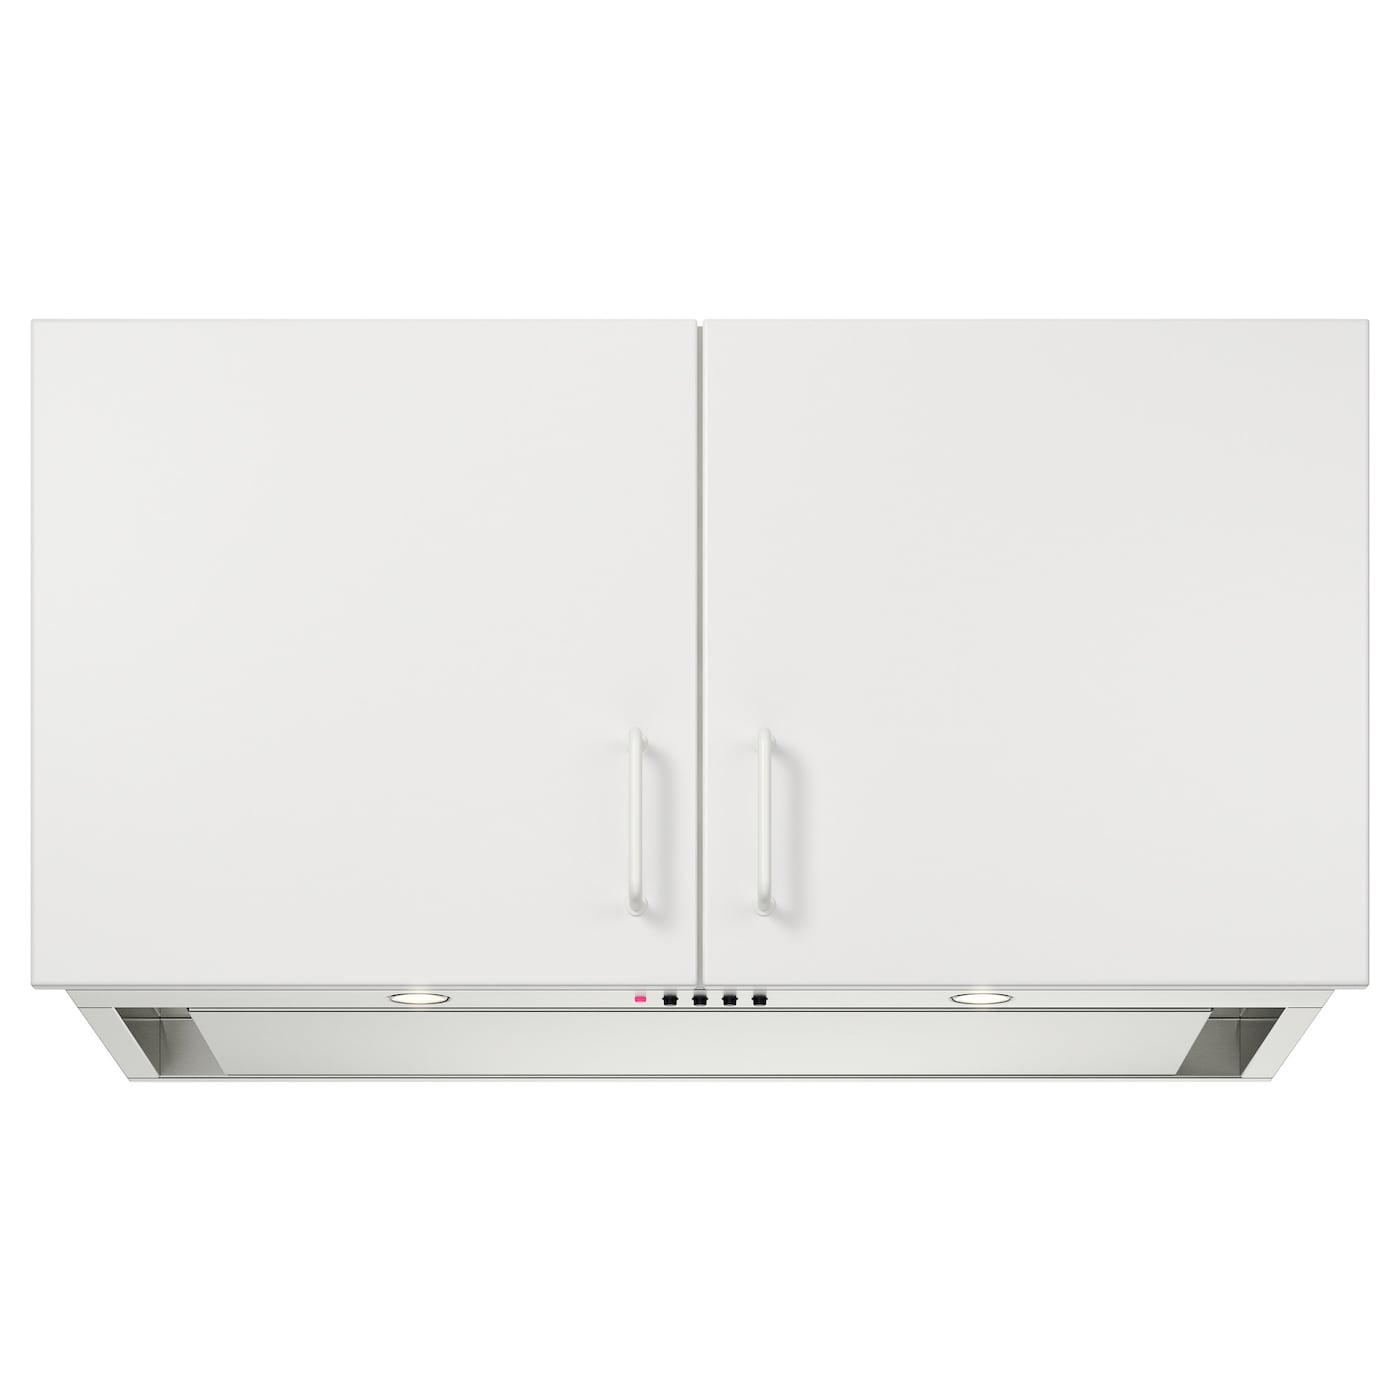 IKEA UNDERVERK built-in extractor hood Easy to install in a wall cabinet.